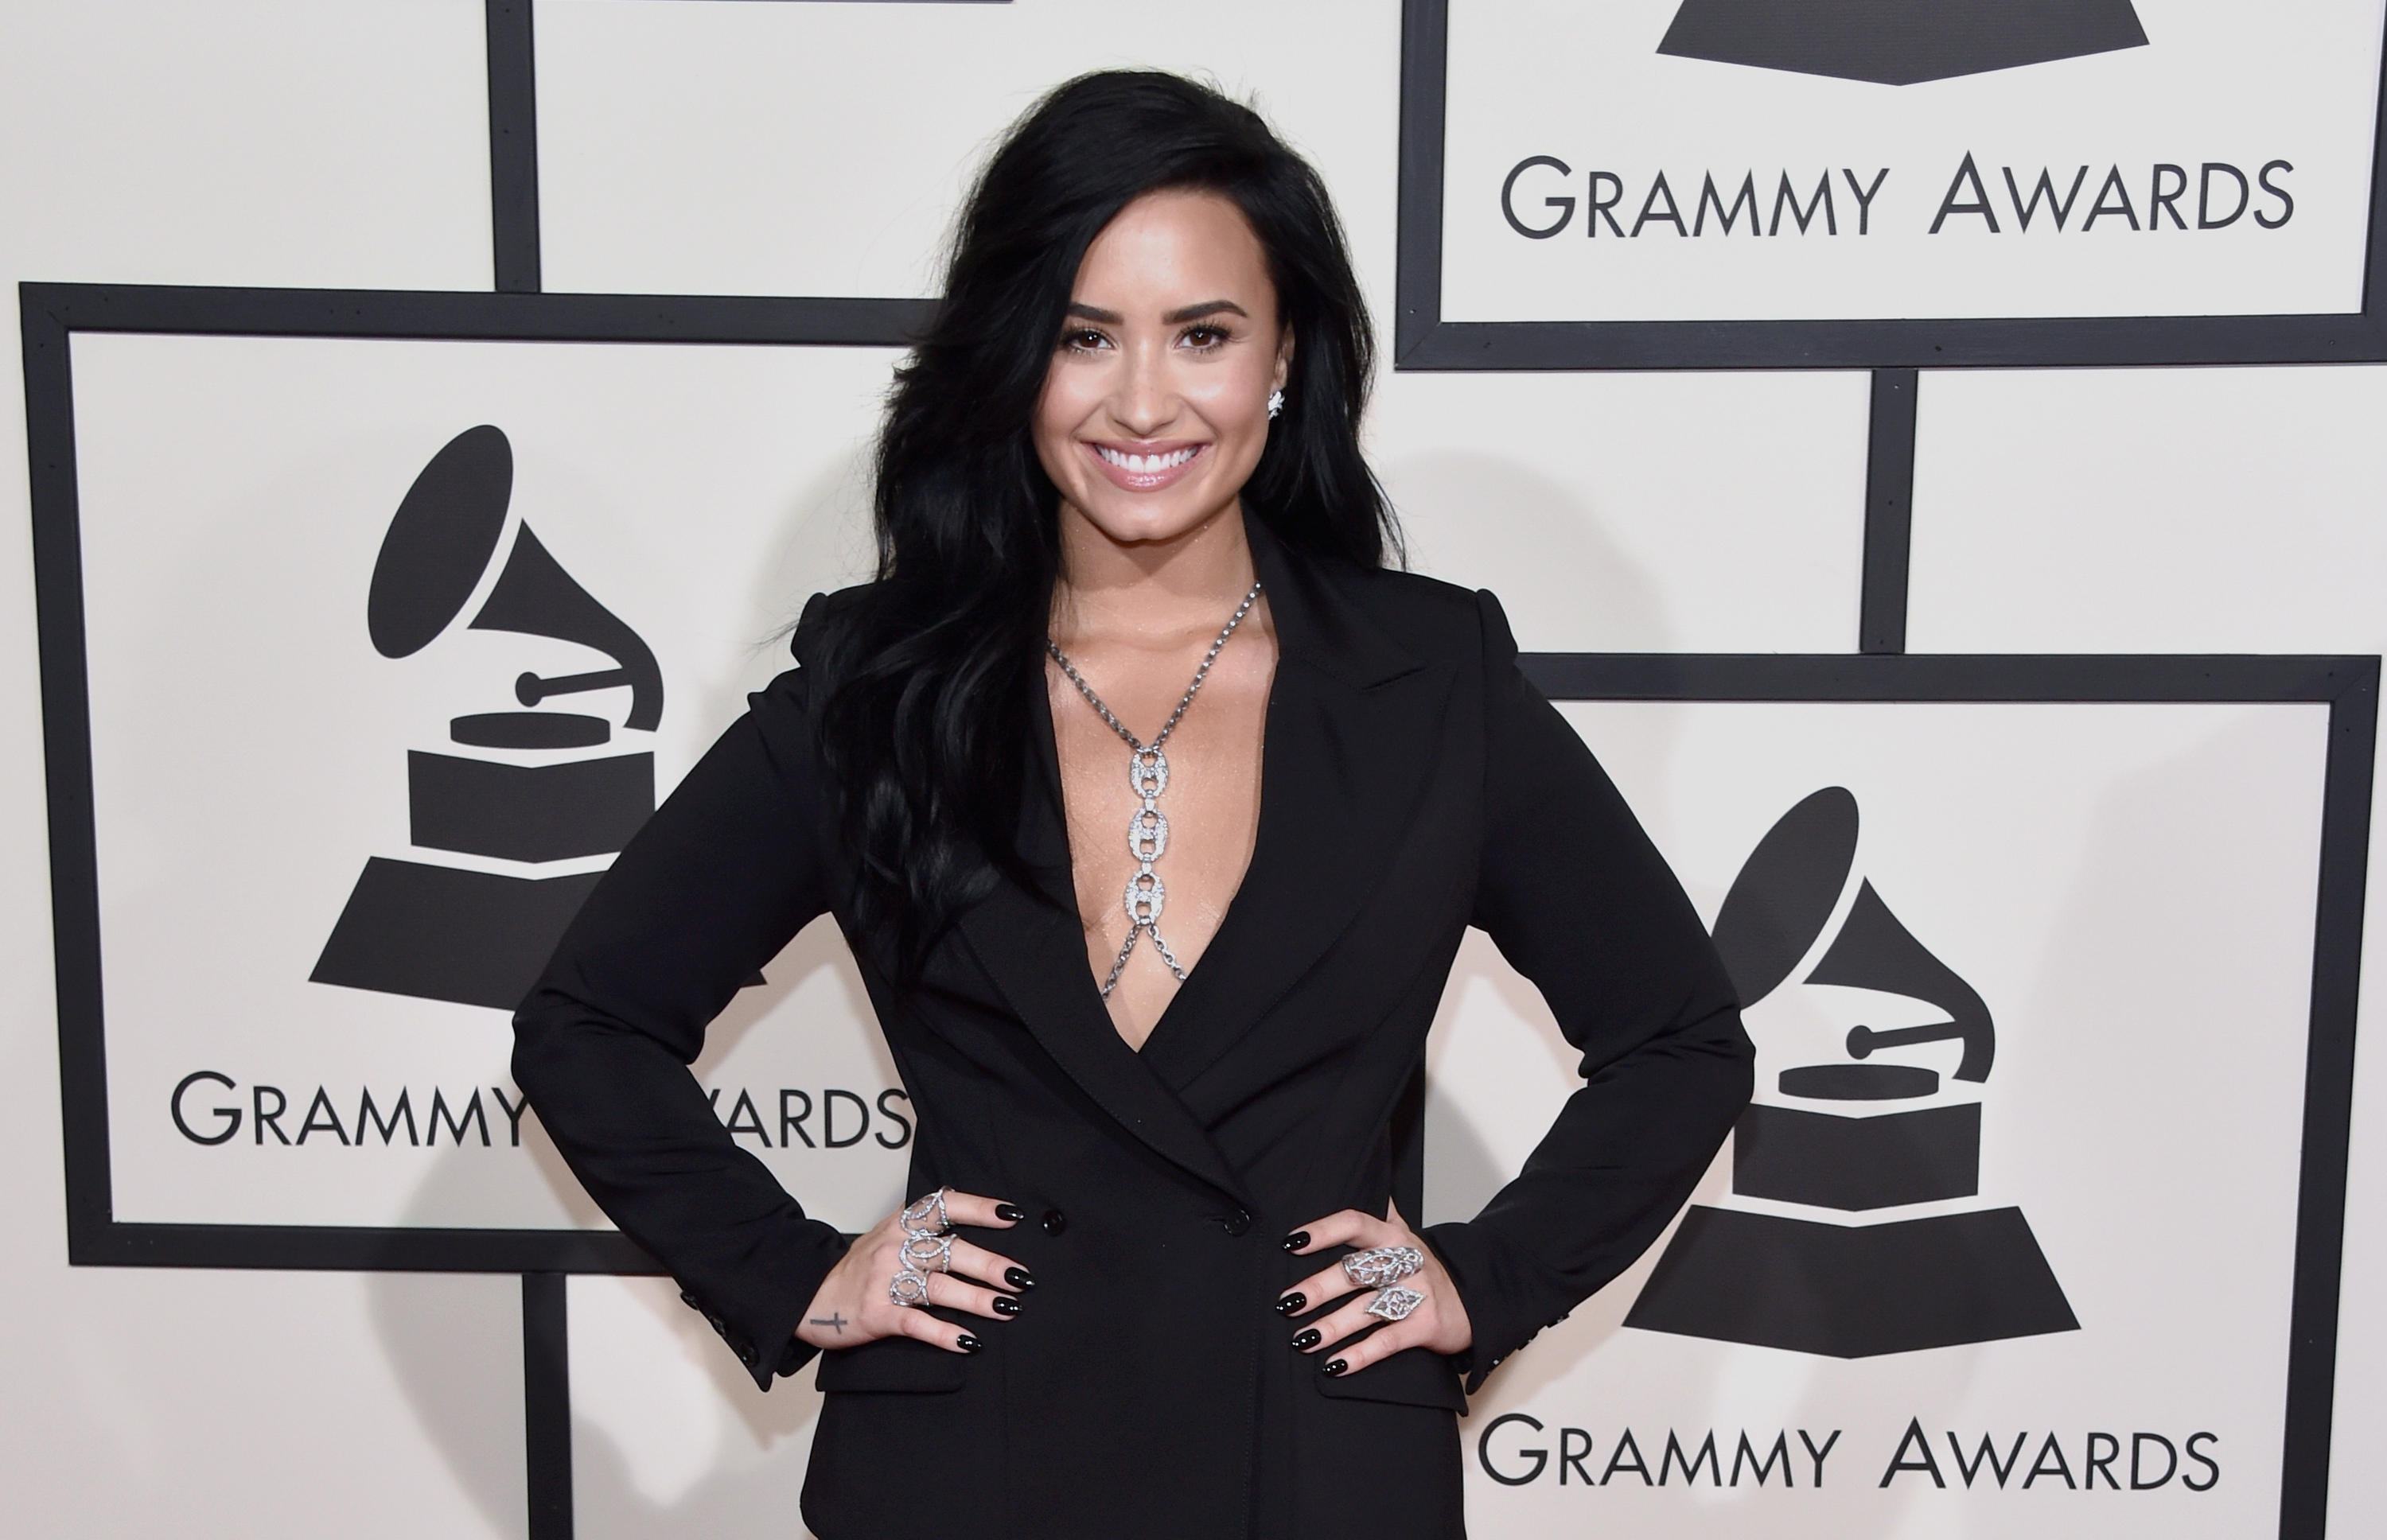 Recording artist Demi Lovato attends The 58th Grammy Awards on Feb. 15, 2016 in Los Angeles, Calif.